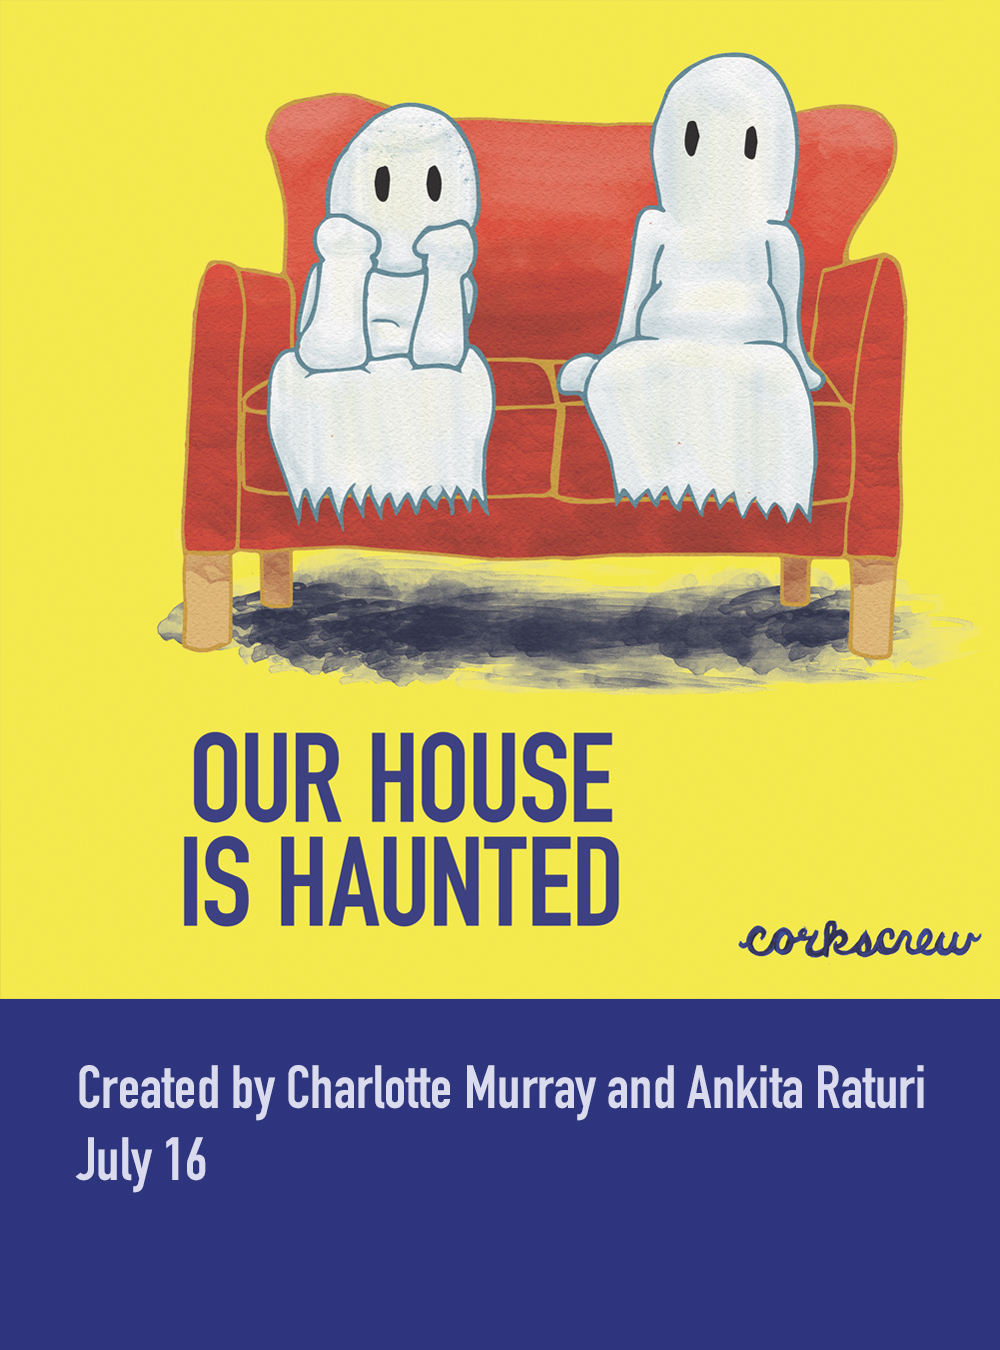 Our House is Haunted weaves together ghost stories, paranormal theories, and pop culture in order to offer audiences a tour through the eerie and unknown. A devised collage inspired by Cubism, the play seeks to conjure spirits beyond our grasp, so that we can reflect on the roles they play among the living.    MORE INFORMATION